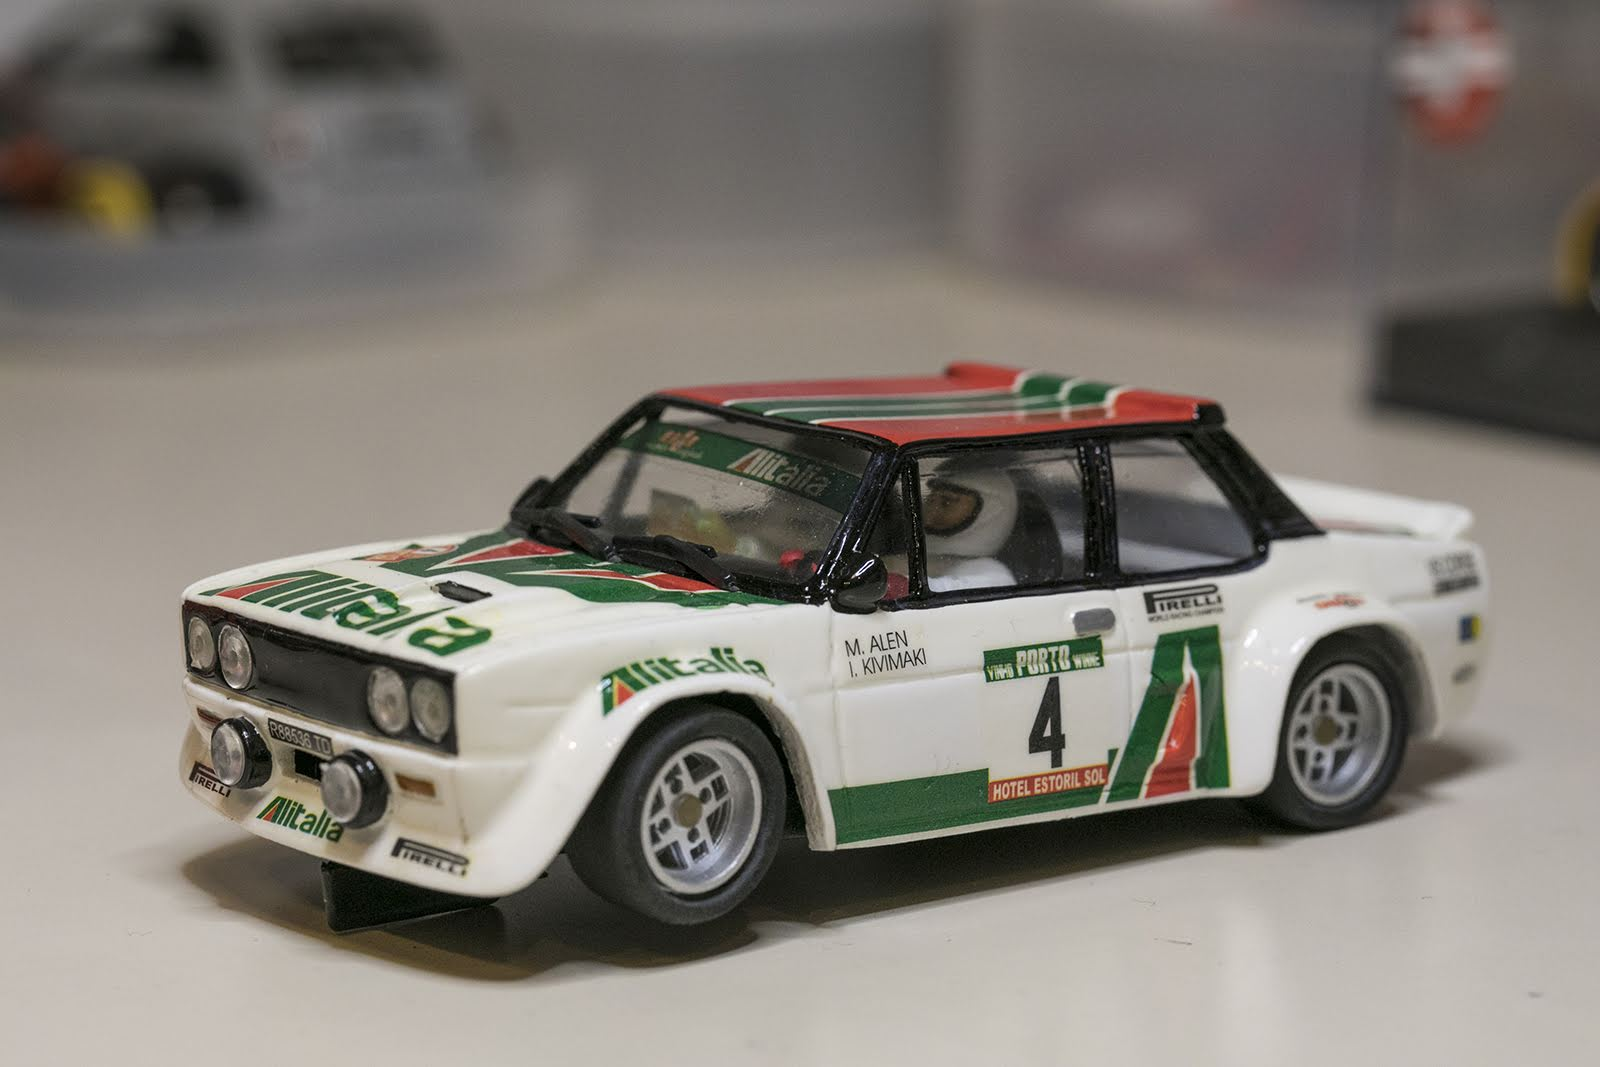 190125_Abarth_Slot_Car_04